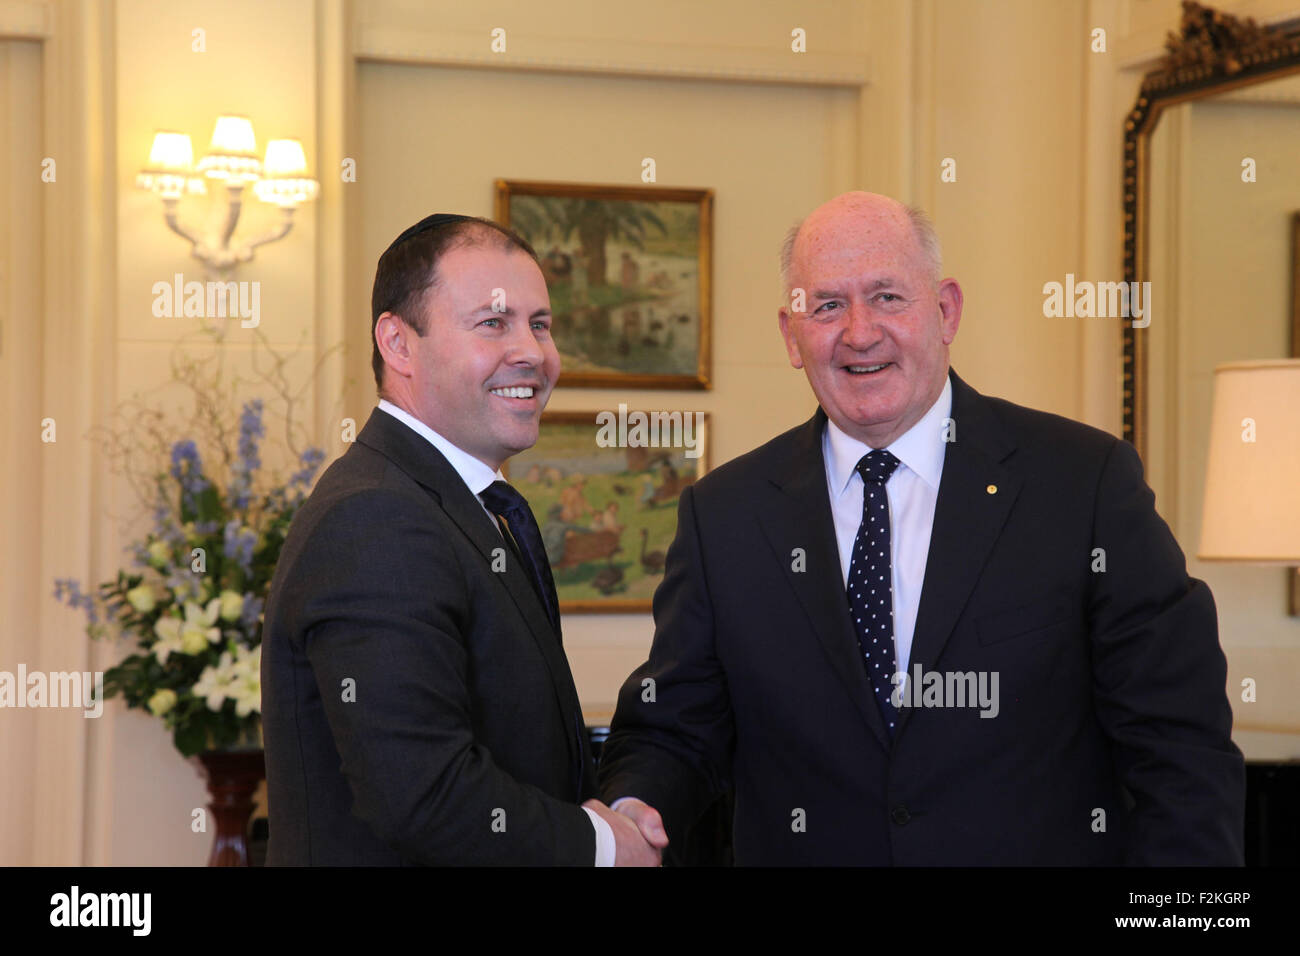 Canberra, Australia. 21st Sep, 2015. Josh Frydenberg (L) is sworn in as Minister for Resources, Energy and Northern - Stock Image